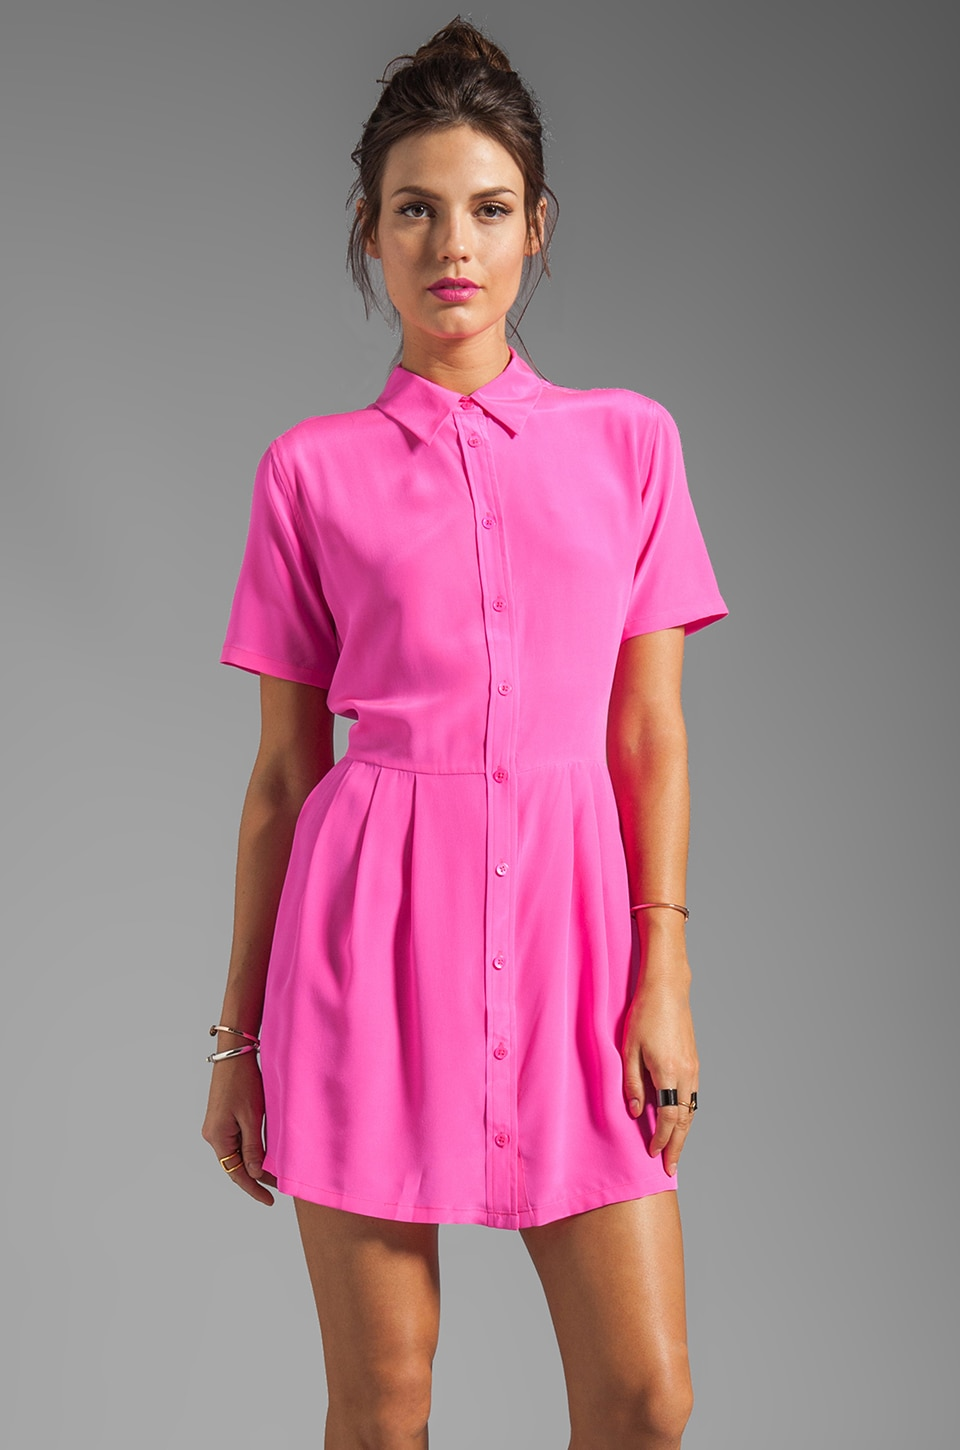 Equipment Naomi Dress in Magenta